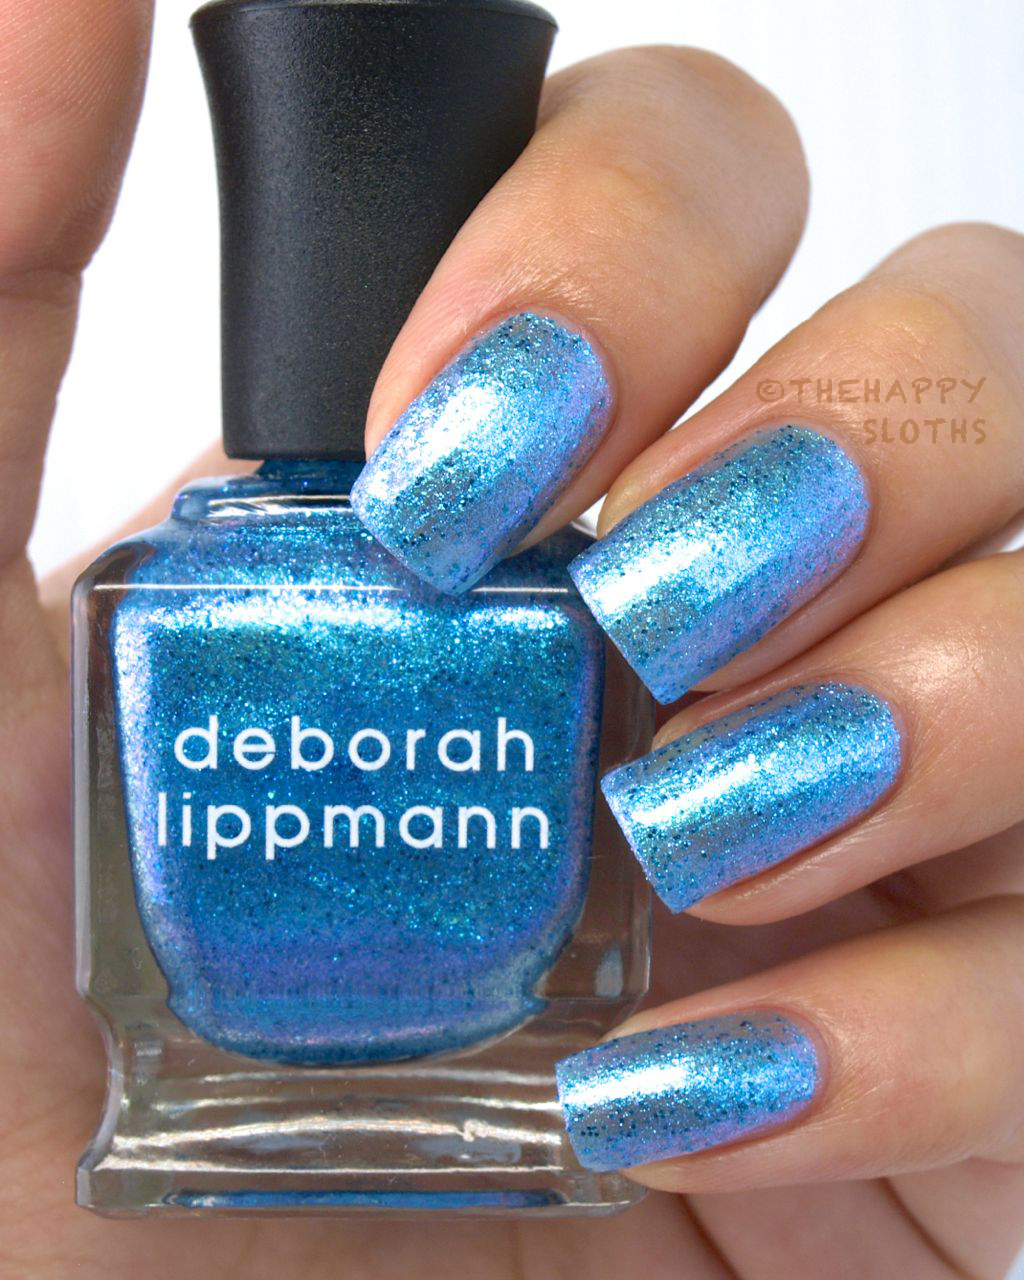 Deborah Lippmann Holiday 2014 Collection Xanadu Review and Swatches